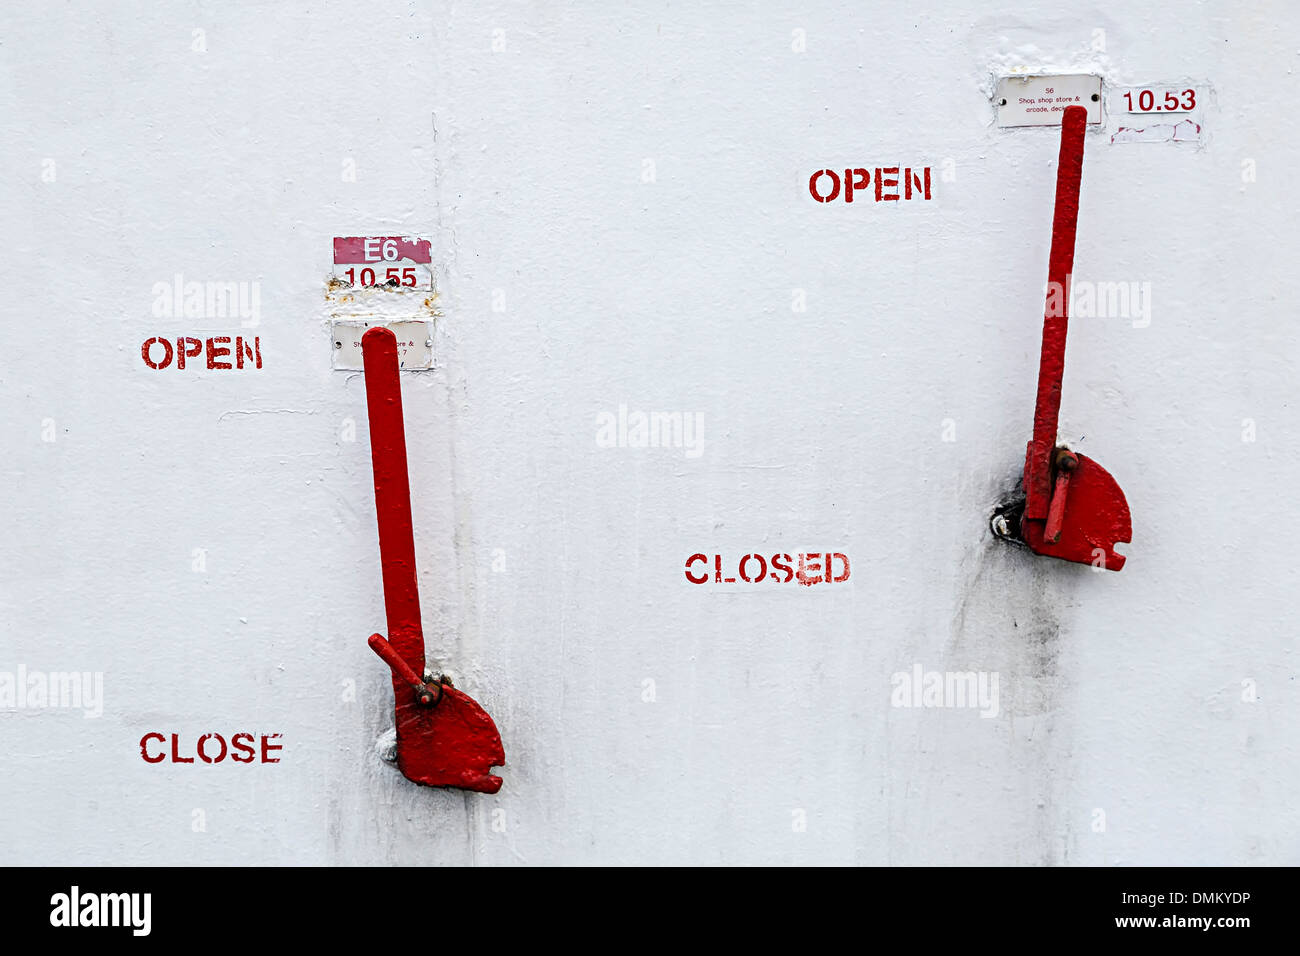 Levers with open and closed signs on ferry UK - Stock Image